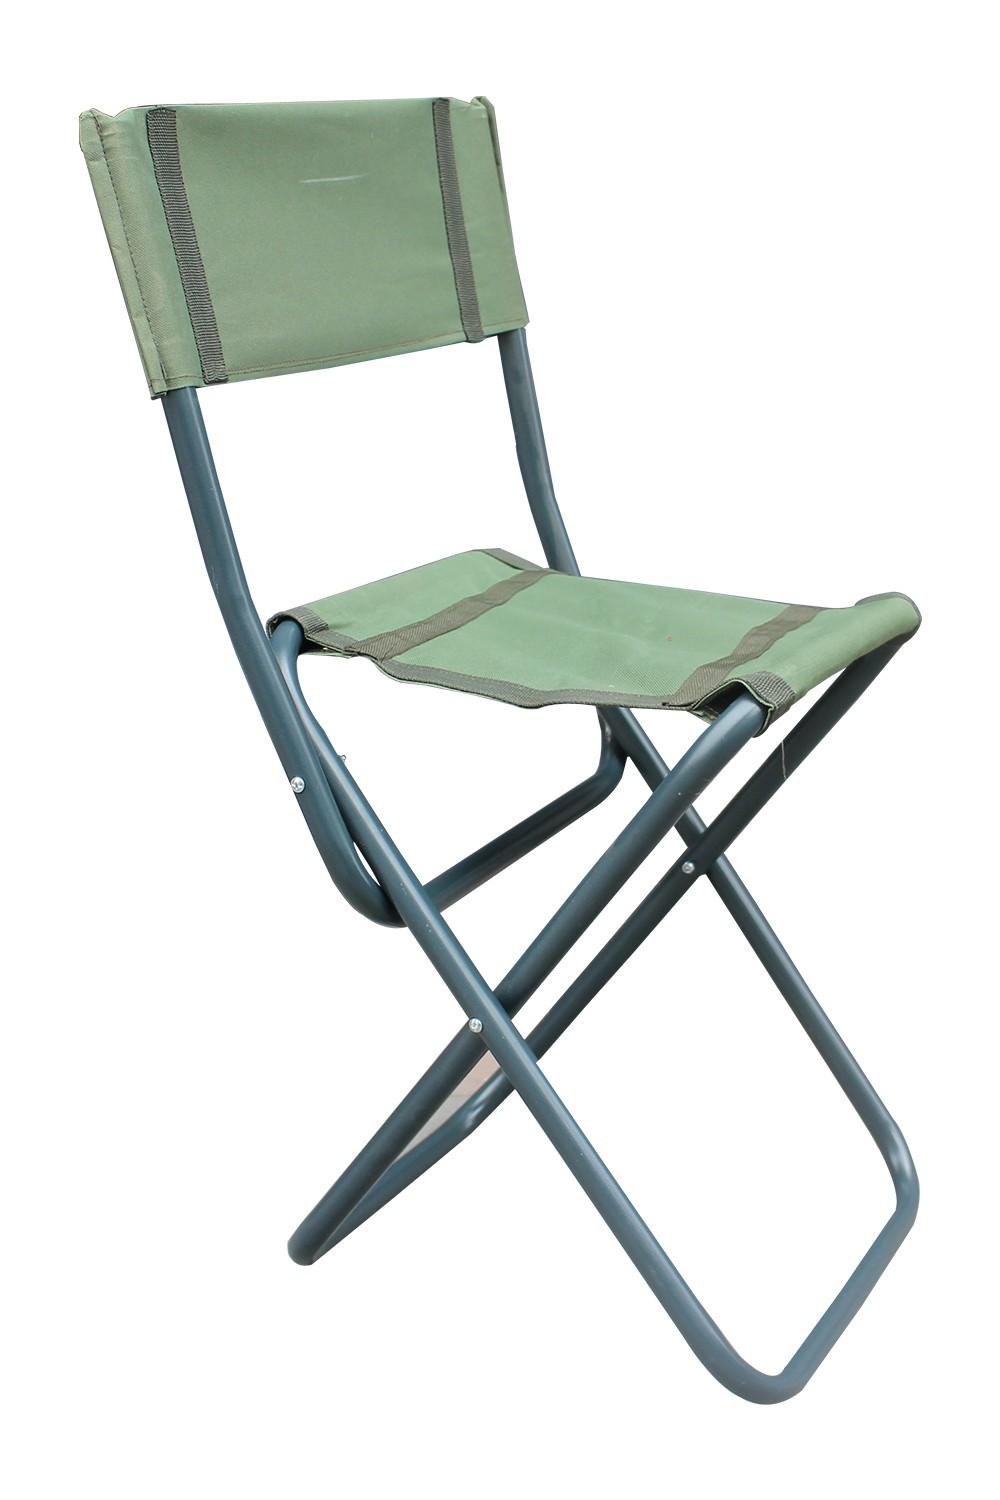 Teknor Mounted Folding Picnic Lawn Chair Camp Stool